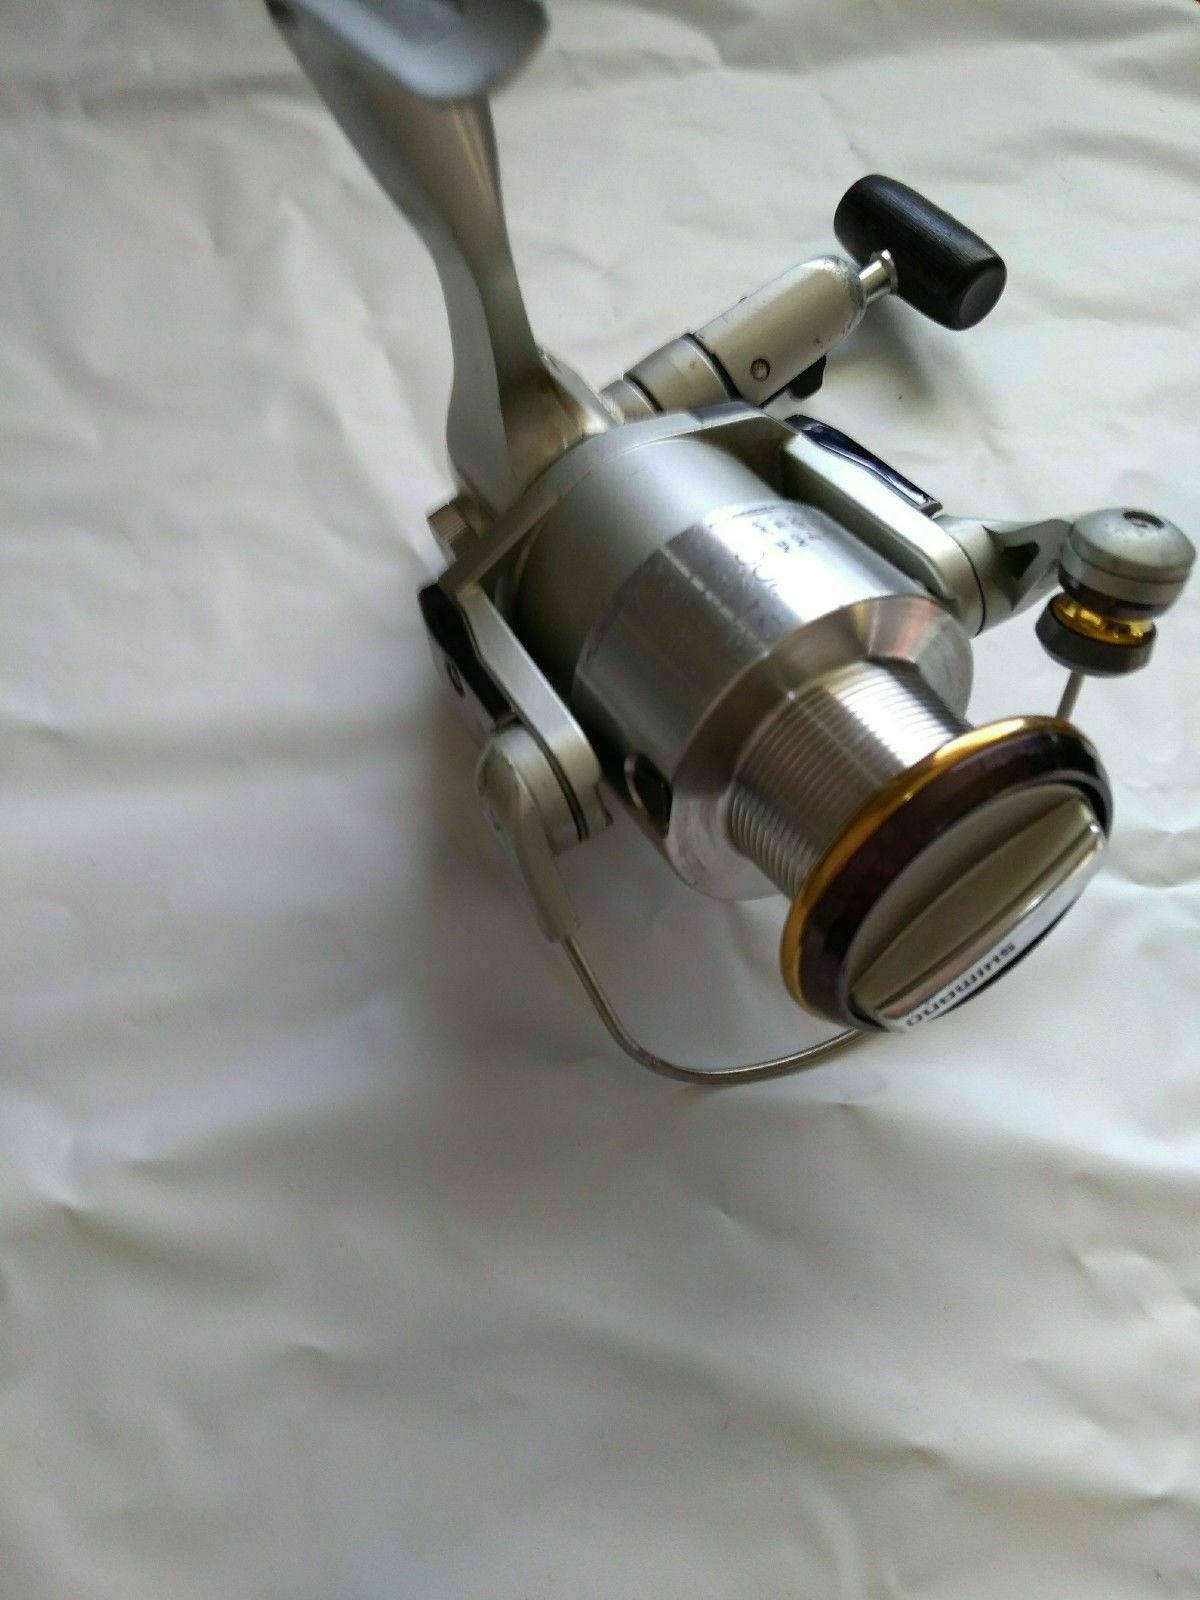 SHIMANO STELLA 3000 FRESHWATER FISHING REEL MADE IN JAPAN